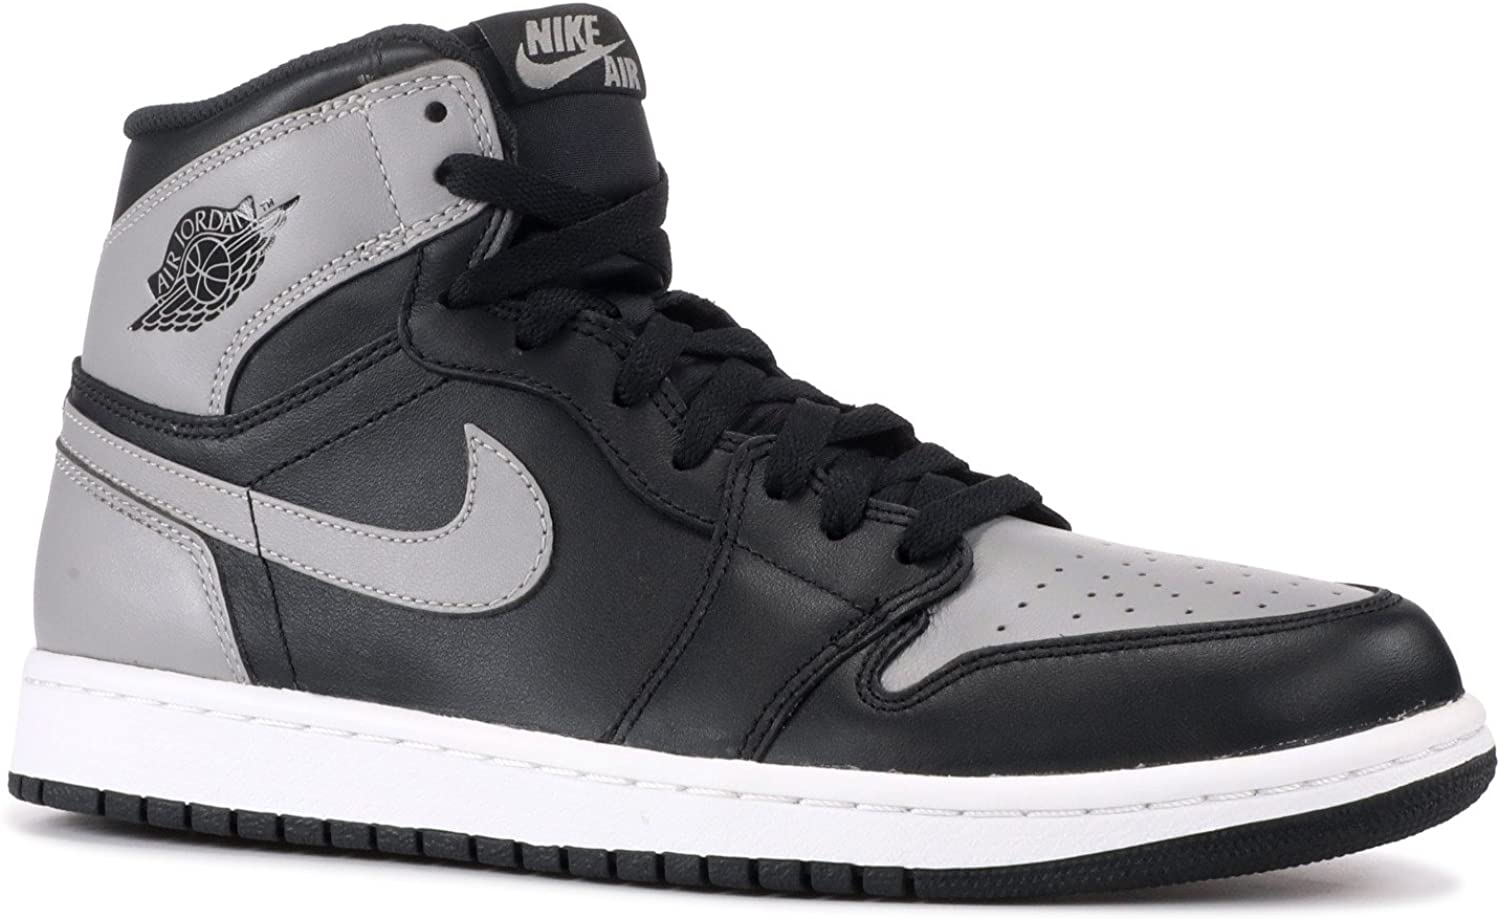 nike air jordan 1 hight